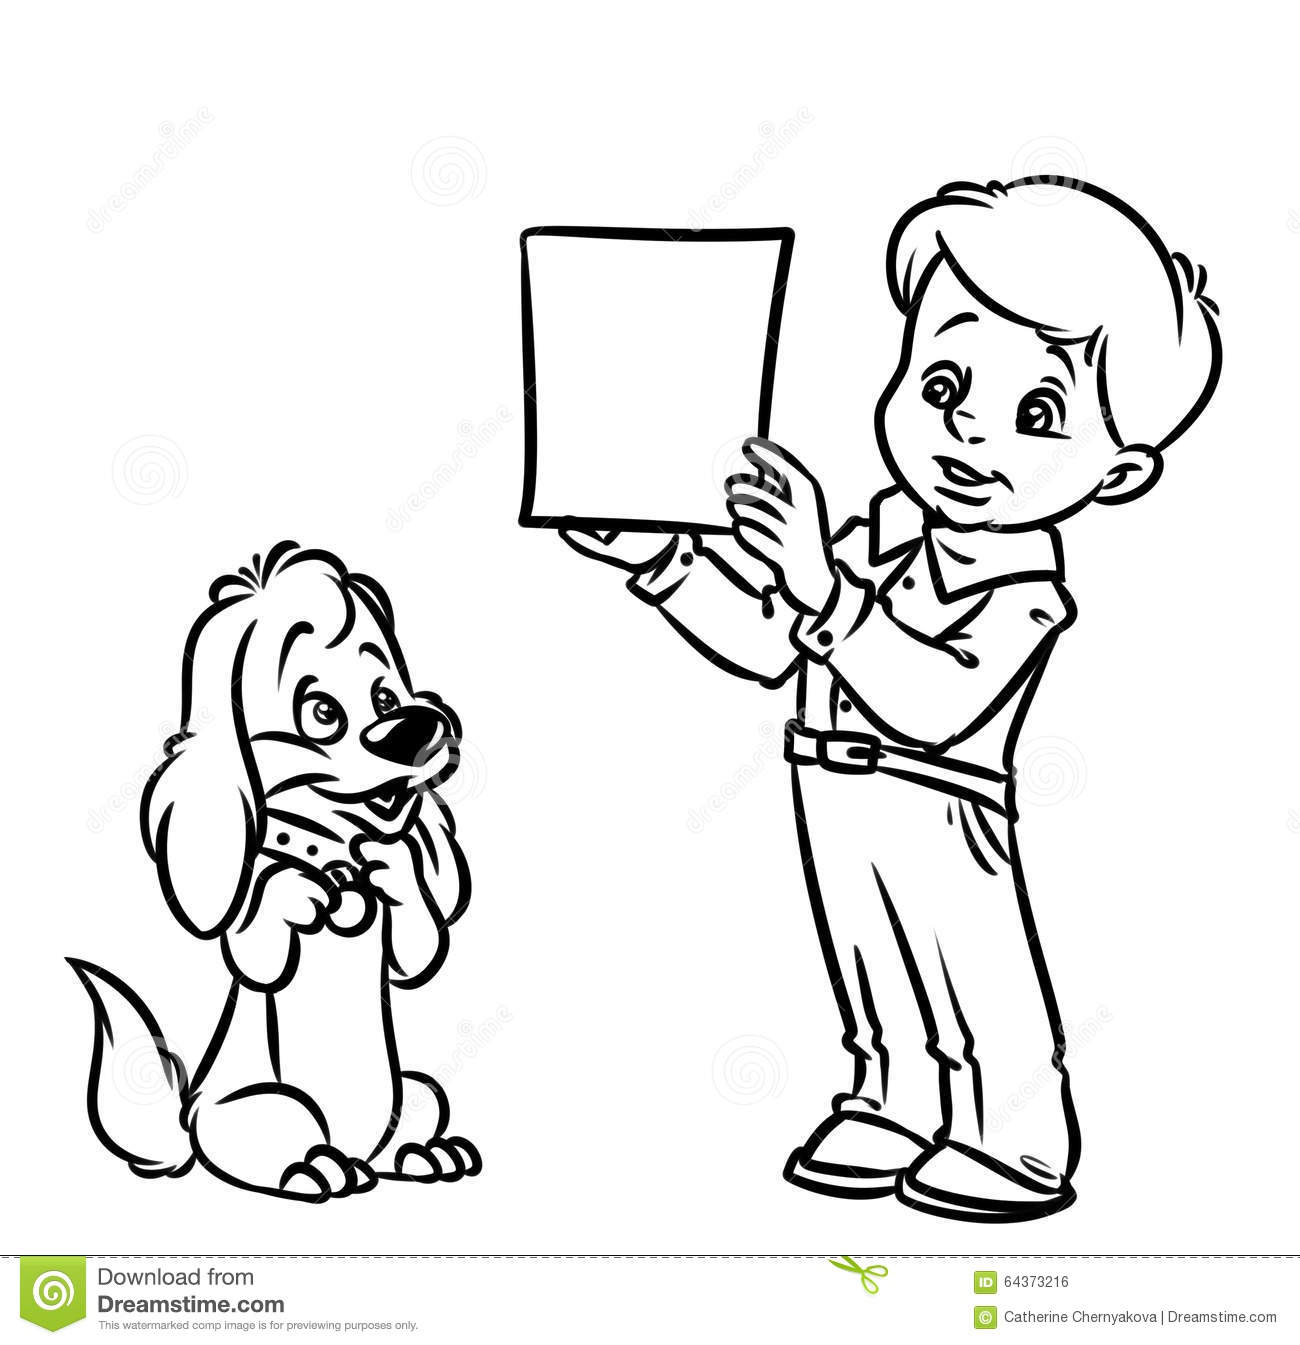 a boy and his dog coloring pages - photo #15